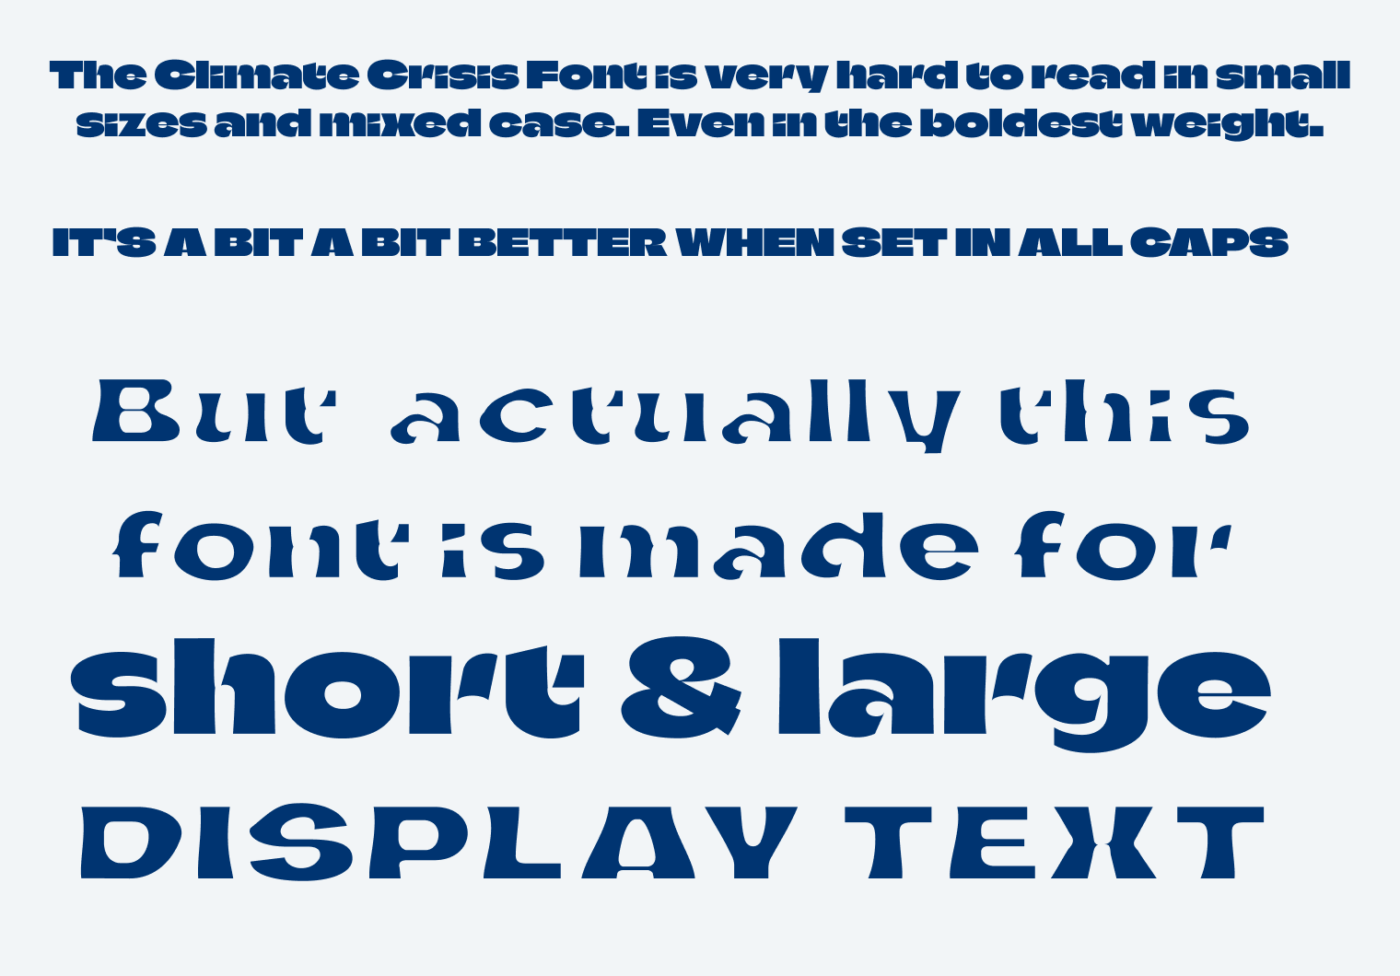 The Climate Crisis Font is very hard to read in small sizes and mixed case. Even in the boldest weight. It's a bit a bit better when set in All Caps. But  actually this font is made for short & large display text.